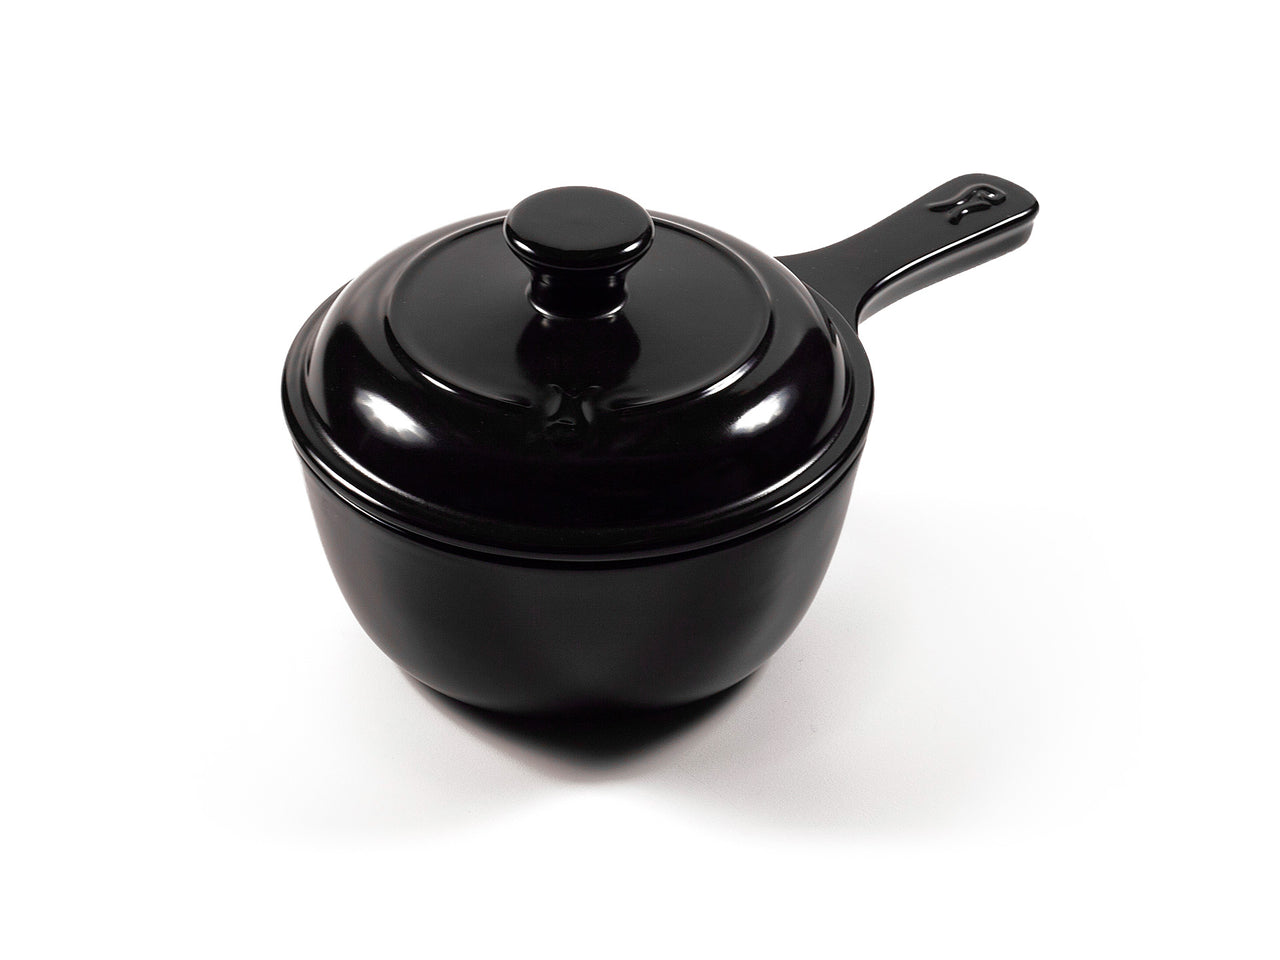 16-Ounce Traditions Saucepan